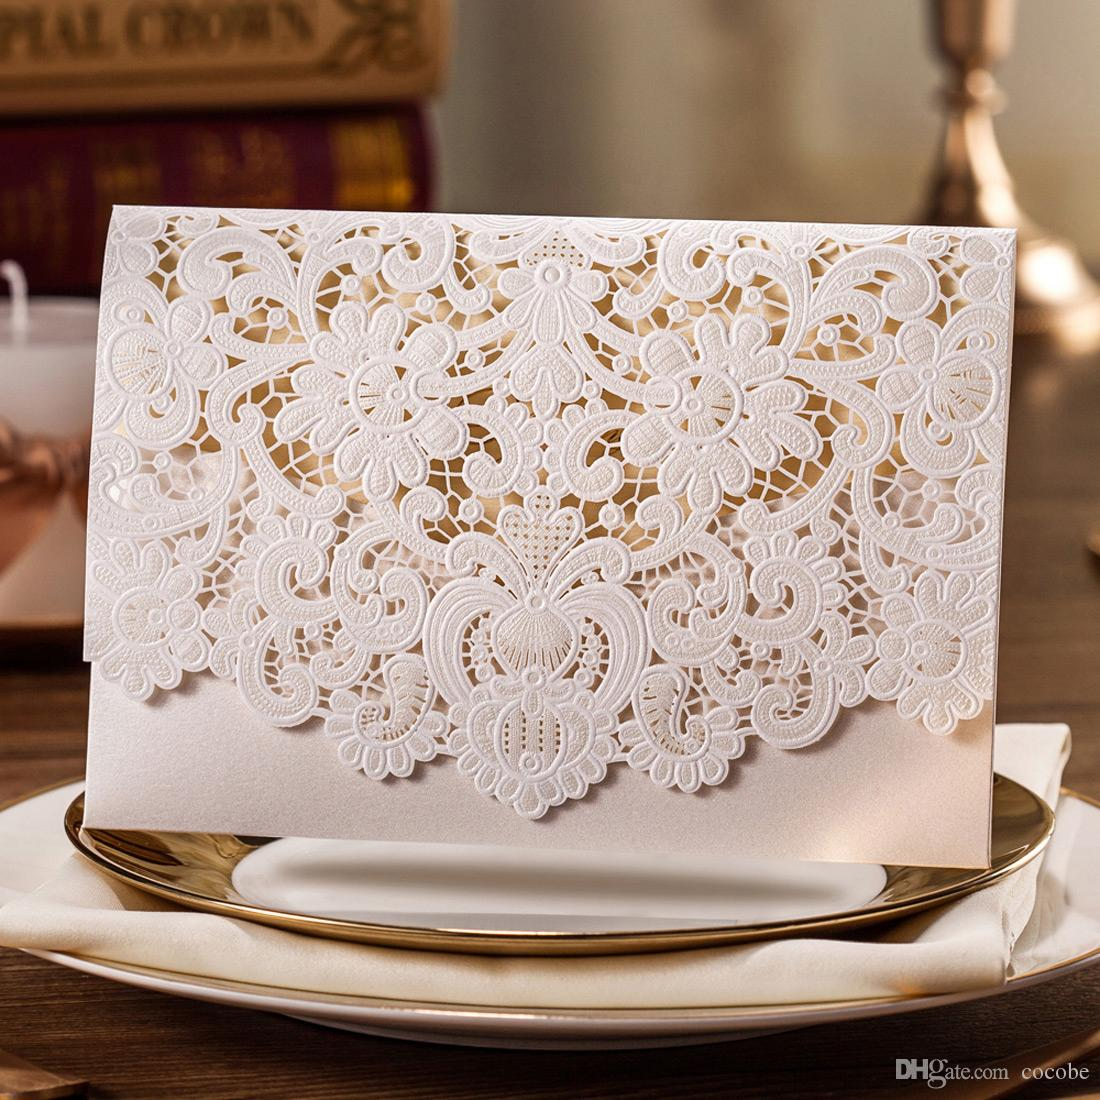 Amazing Laser Cut Wedding Invitations Card With Embossed Flower Printable Paper  Cards Engagement Marriage Bride Shower Invites Envelope Seal Cw073 Muslim  Wedding ...